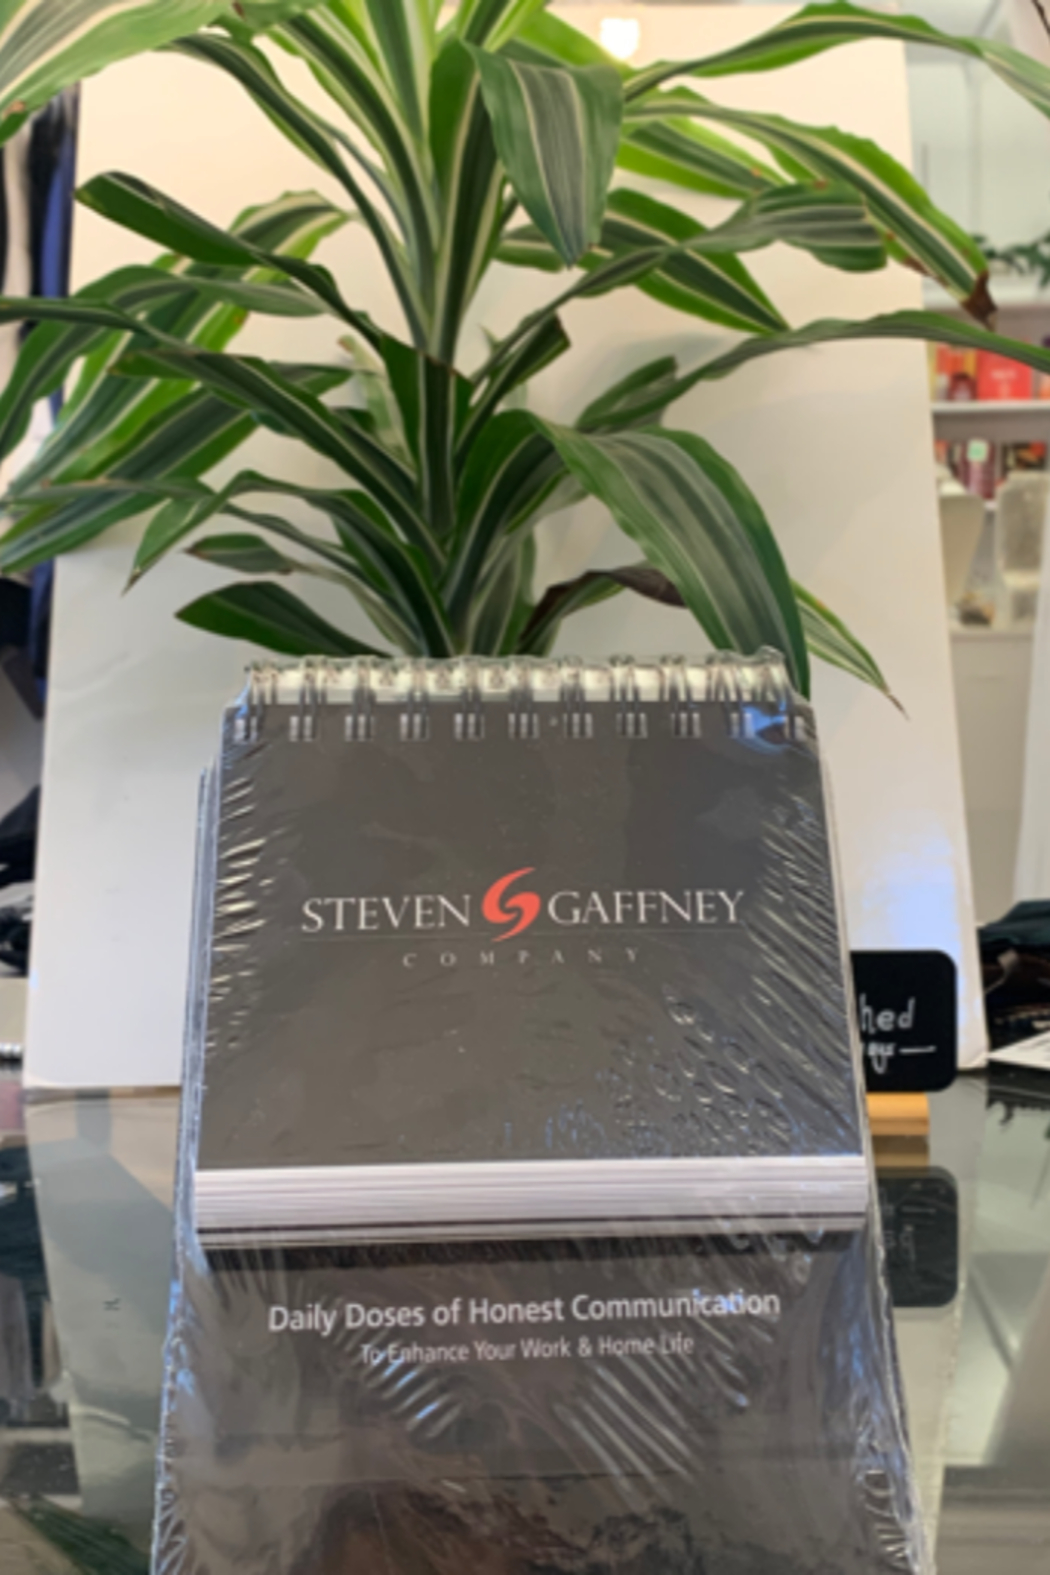 Steven Gaffney Company Daily Doses of Honest Communication - Main Image